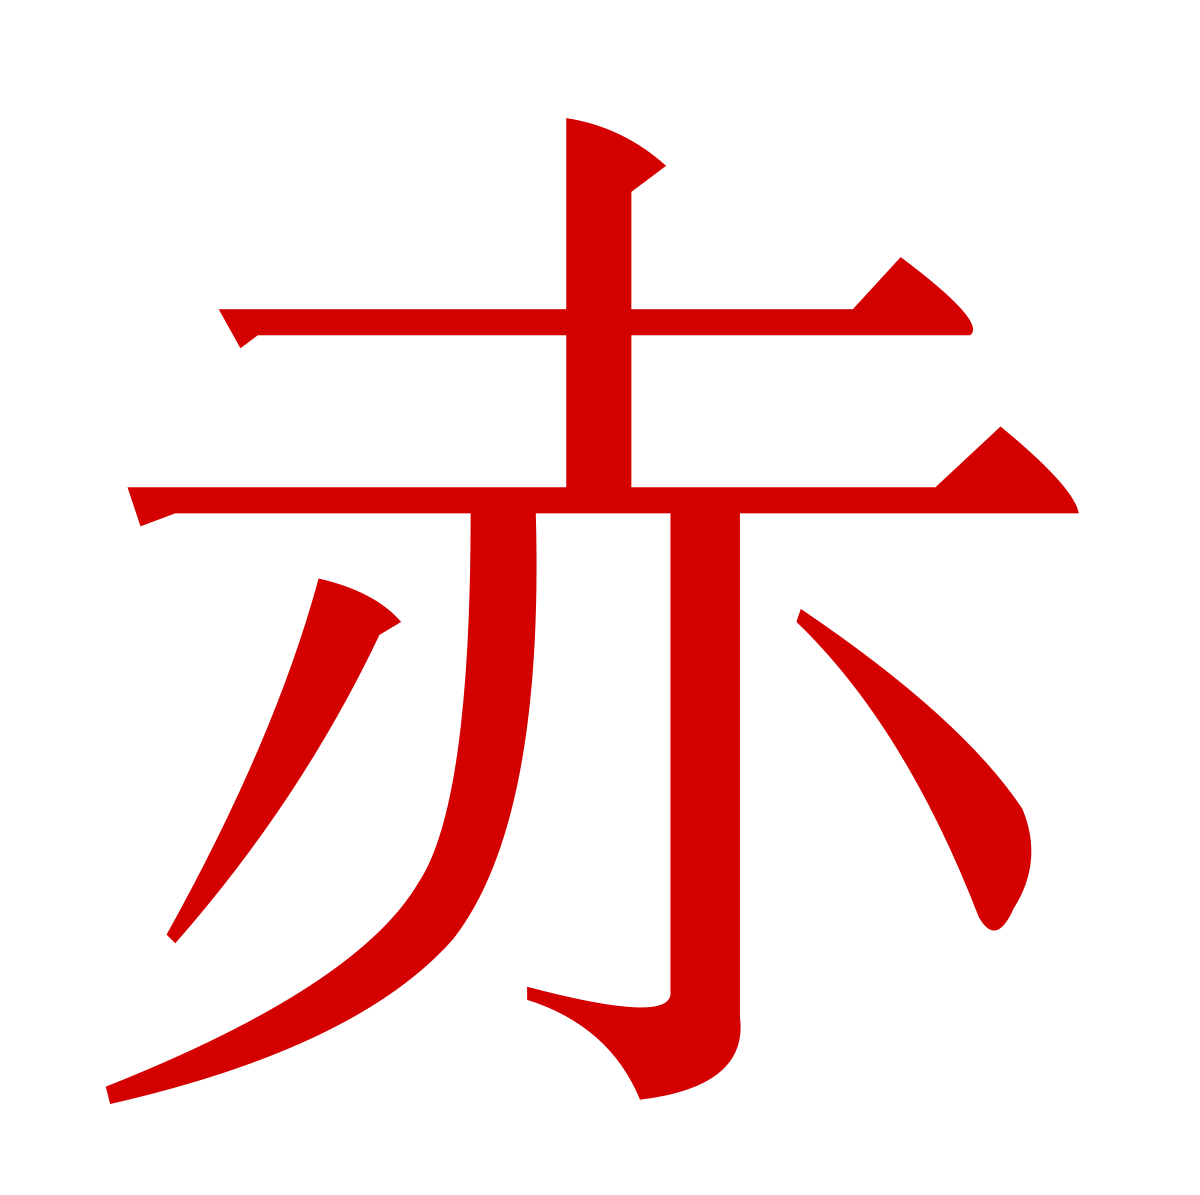 transparent word red